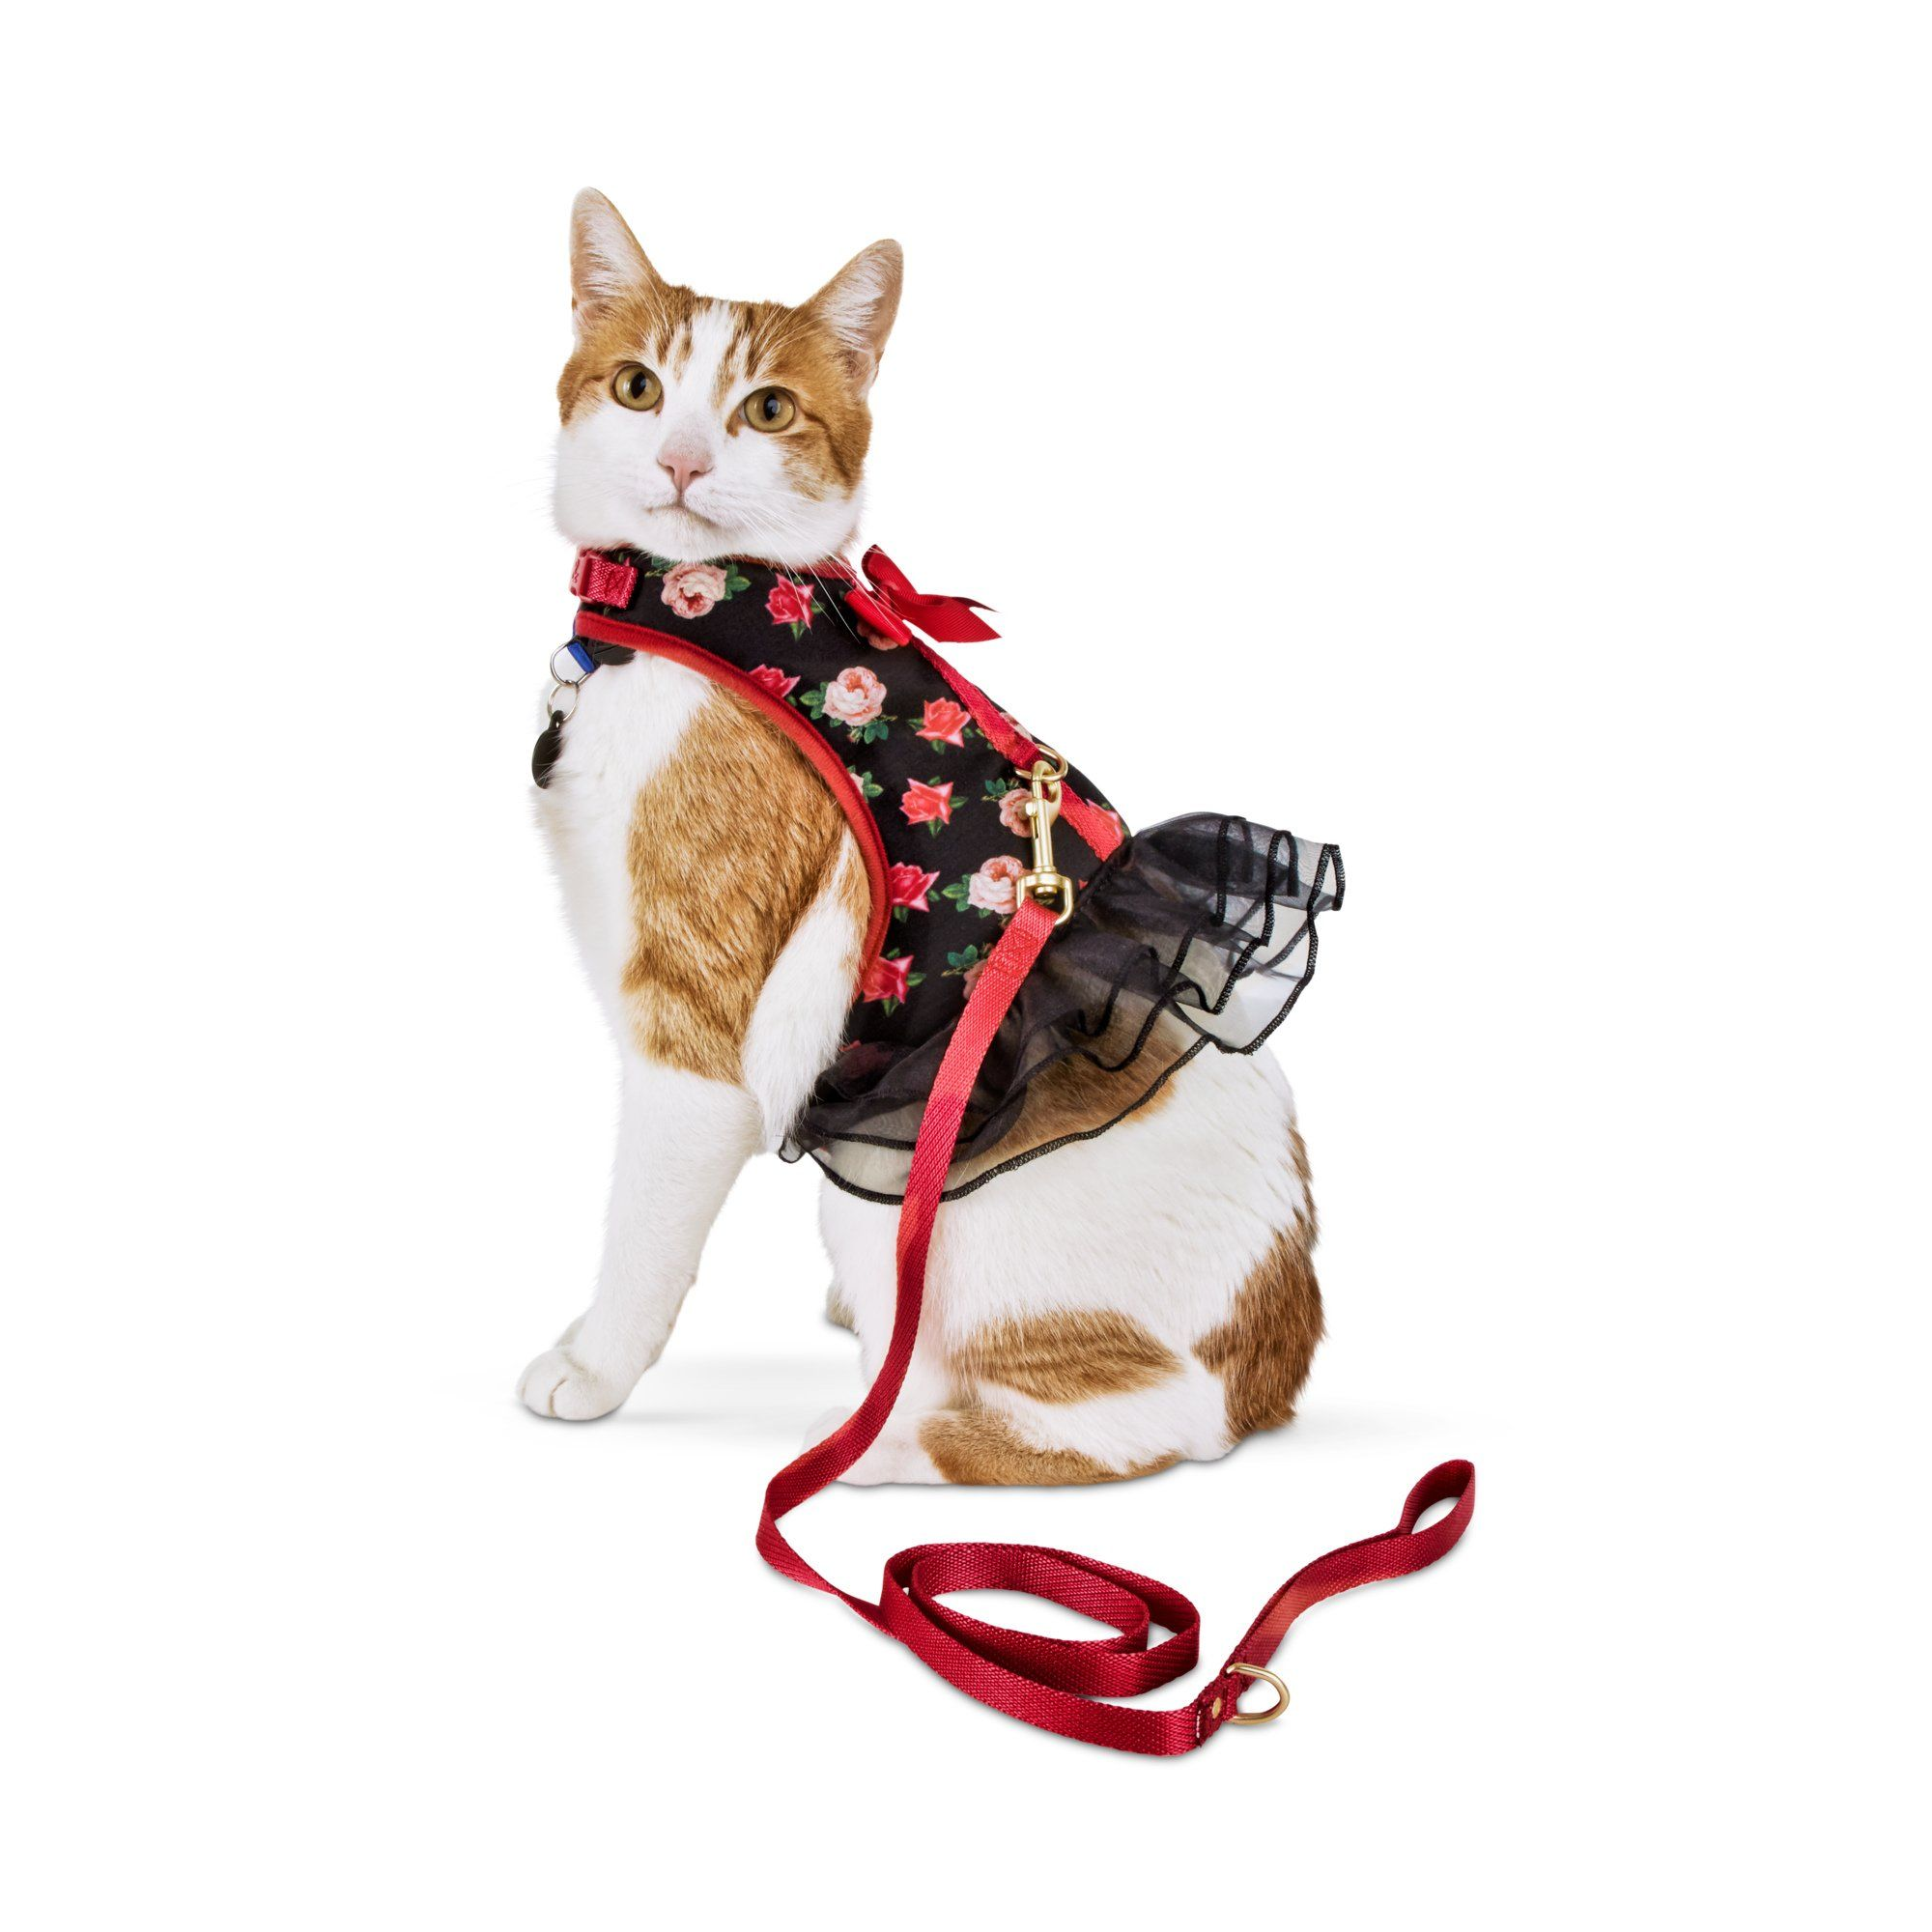 Pin By Katrina Descoteaux On Funny Things And Cool Things Cat Harness Cat Clothes Pink Rose Print